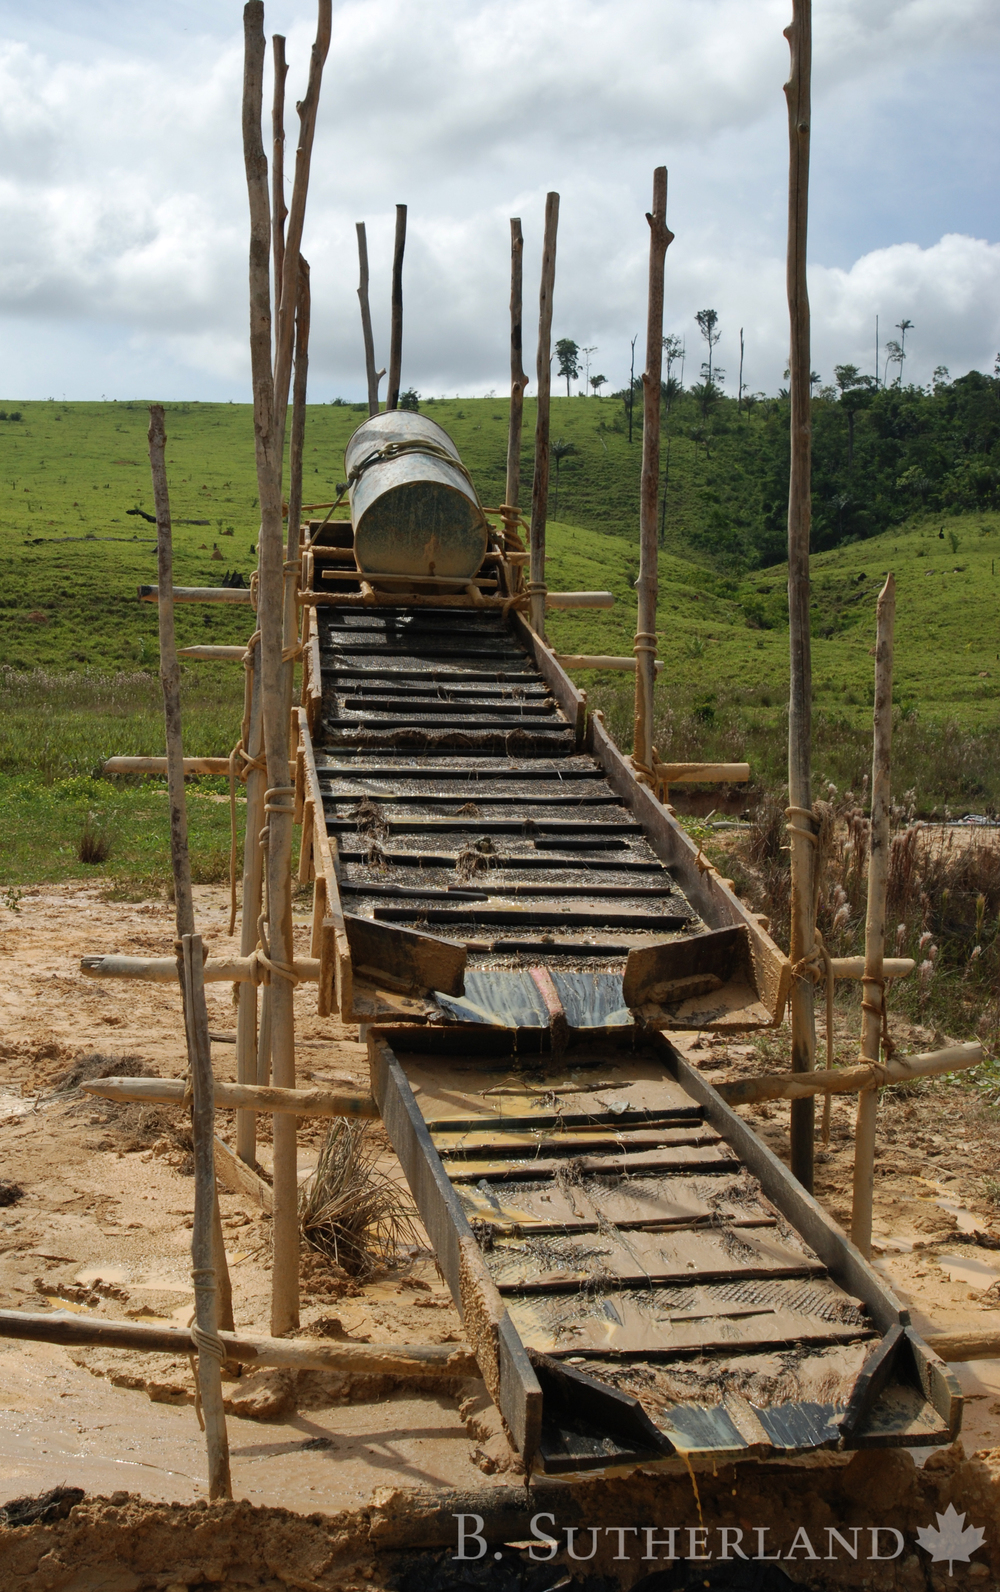 The simple low cost design of sluice boxes make them easy to maintain. Slurry is introduced through the barrel at the top controlling the flow and distribution of material over the sluice box surface.